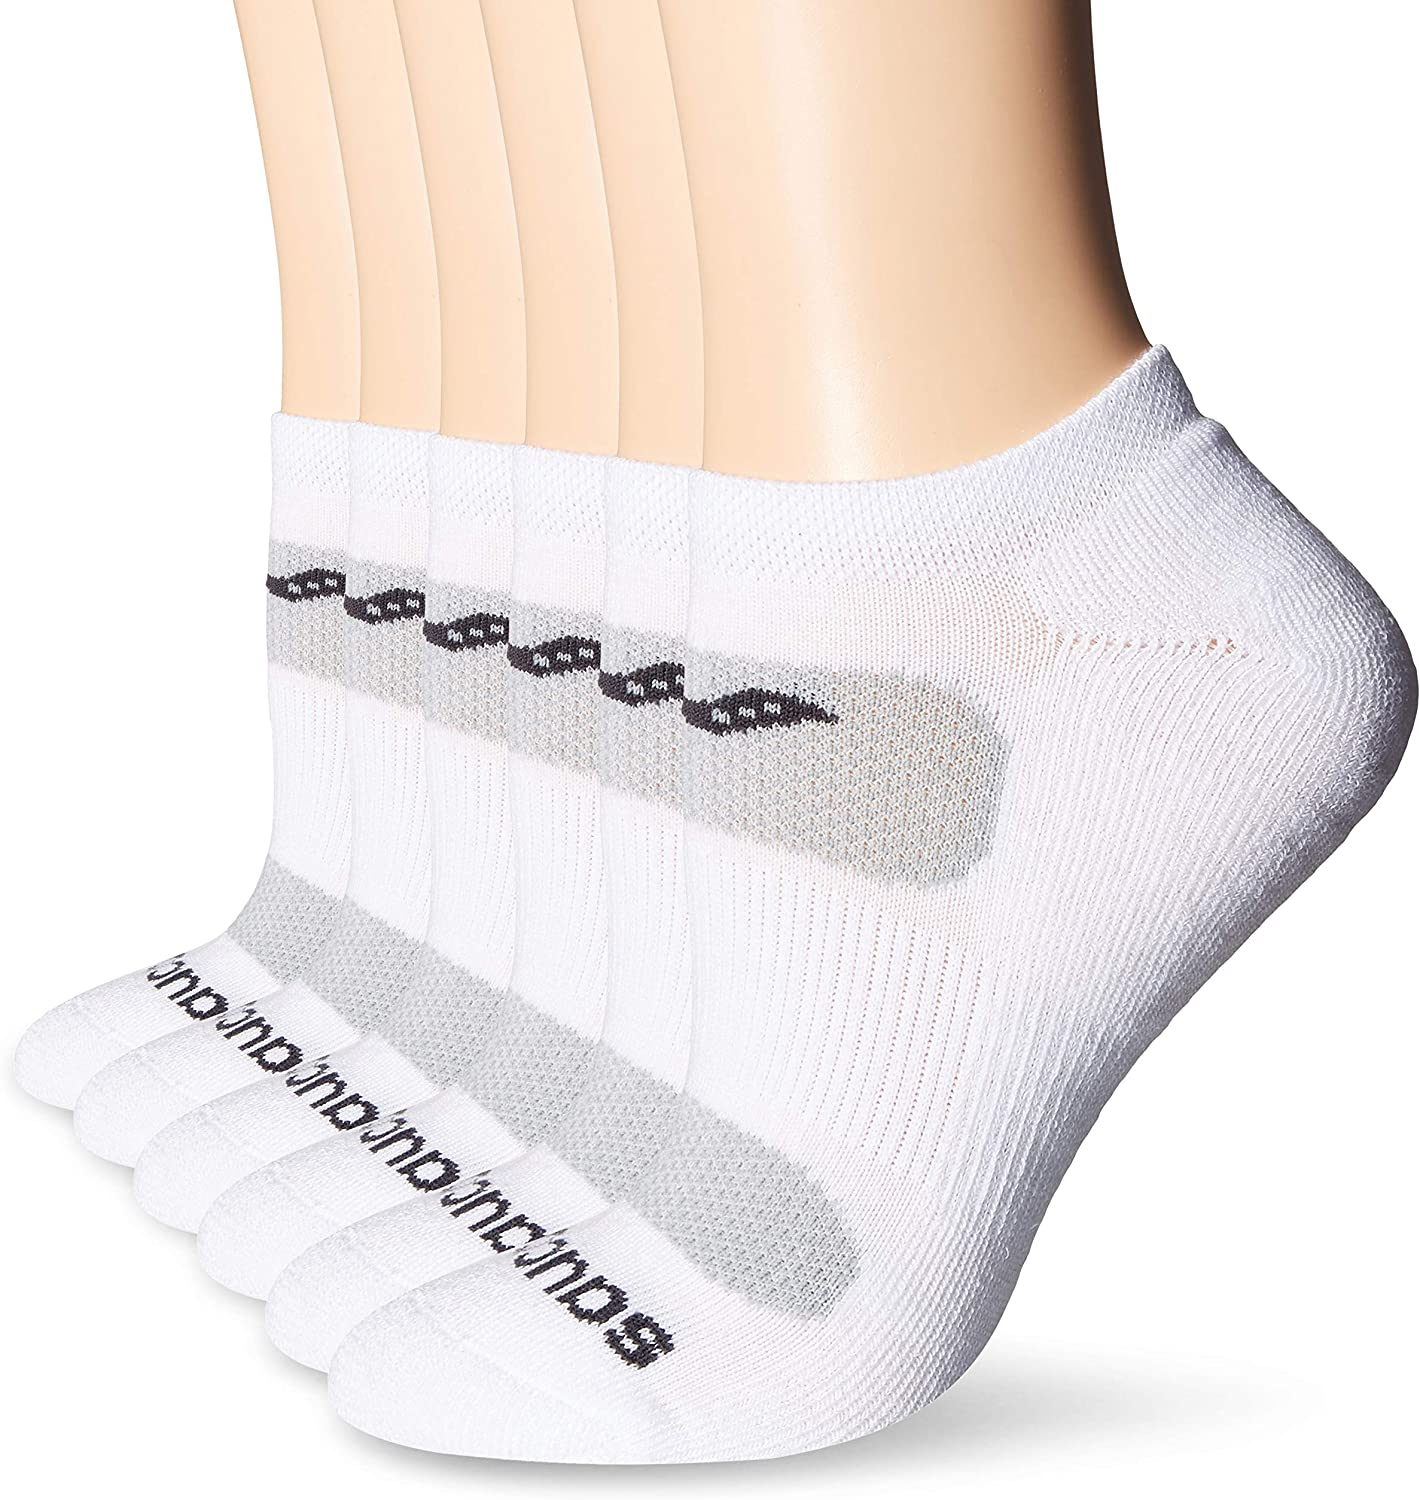 Saucony Women's 6 Pairs Vented Cushioned No Show Performance Running Socks, Grey, Shoe Size: 5-10 at  Women's Clothing store